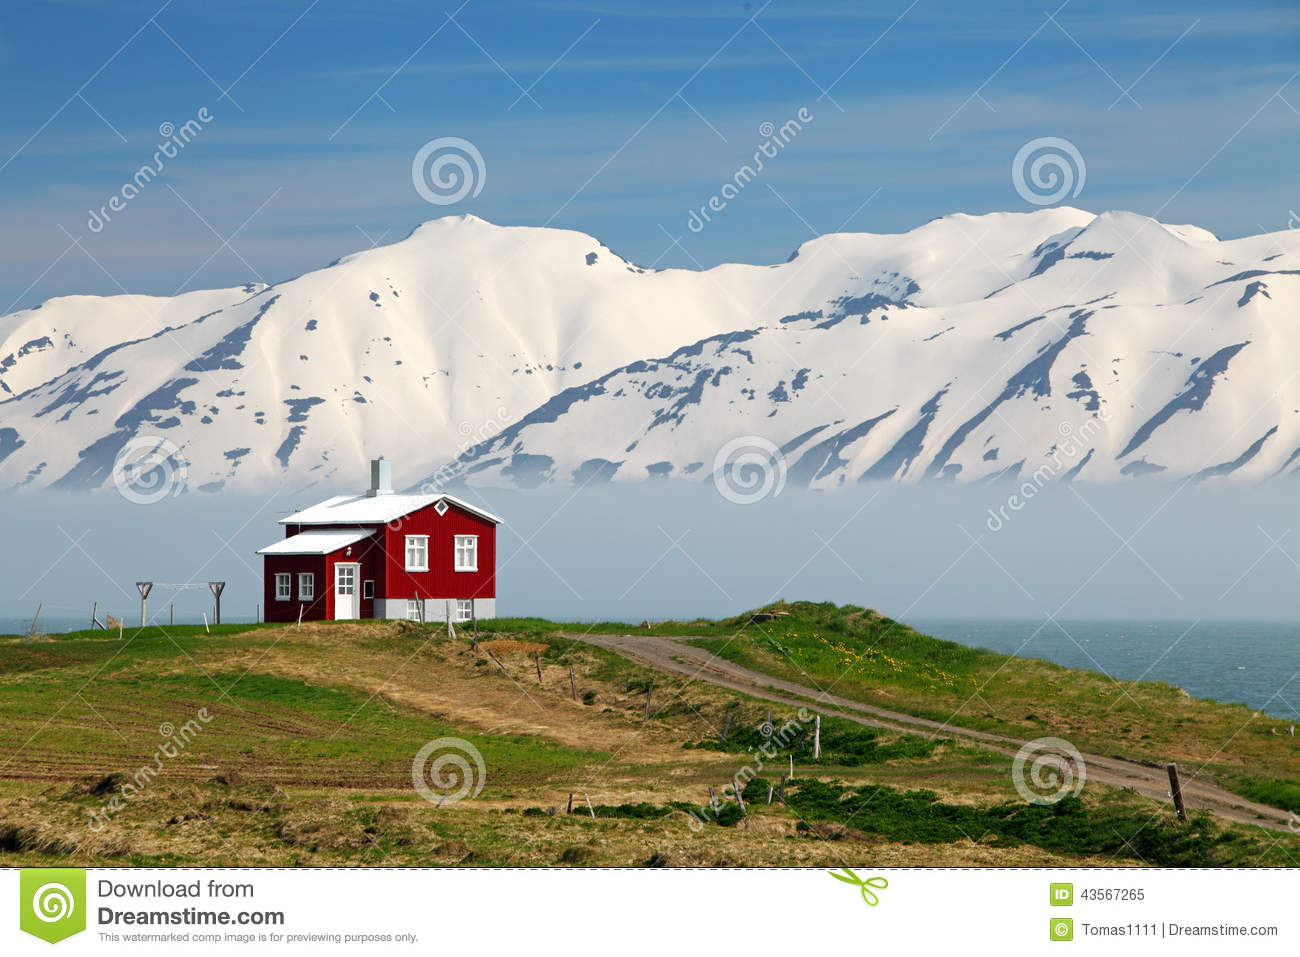 Photo Stock Paysage De L Islande Fjord Eyjafjordur Maison Montagnes Image43567265 on seaside house plans